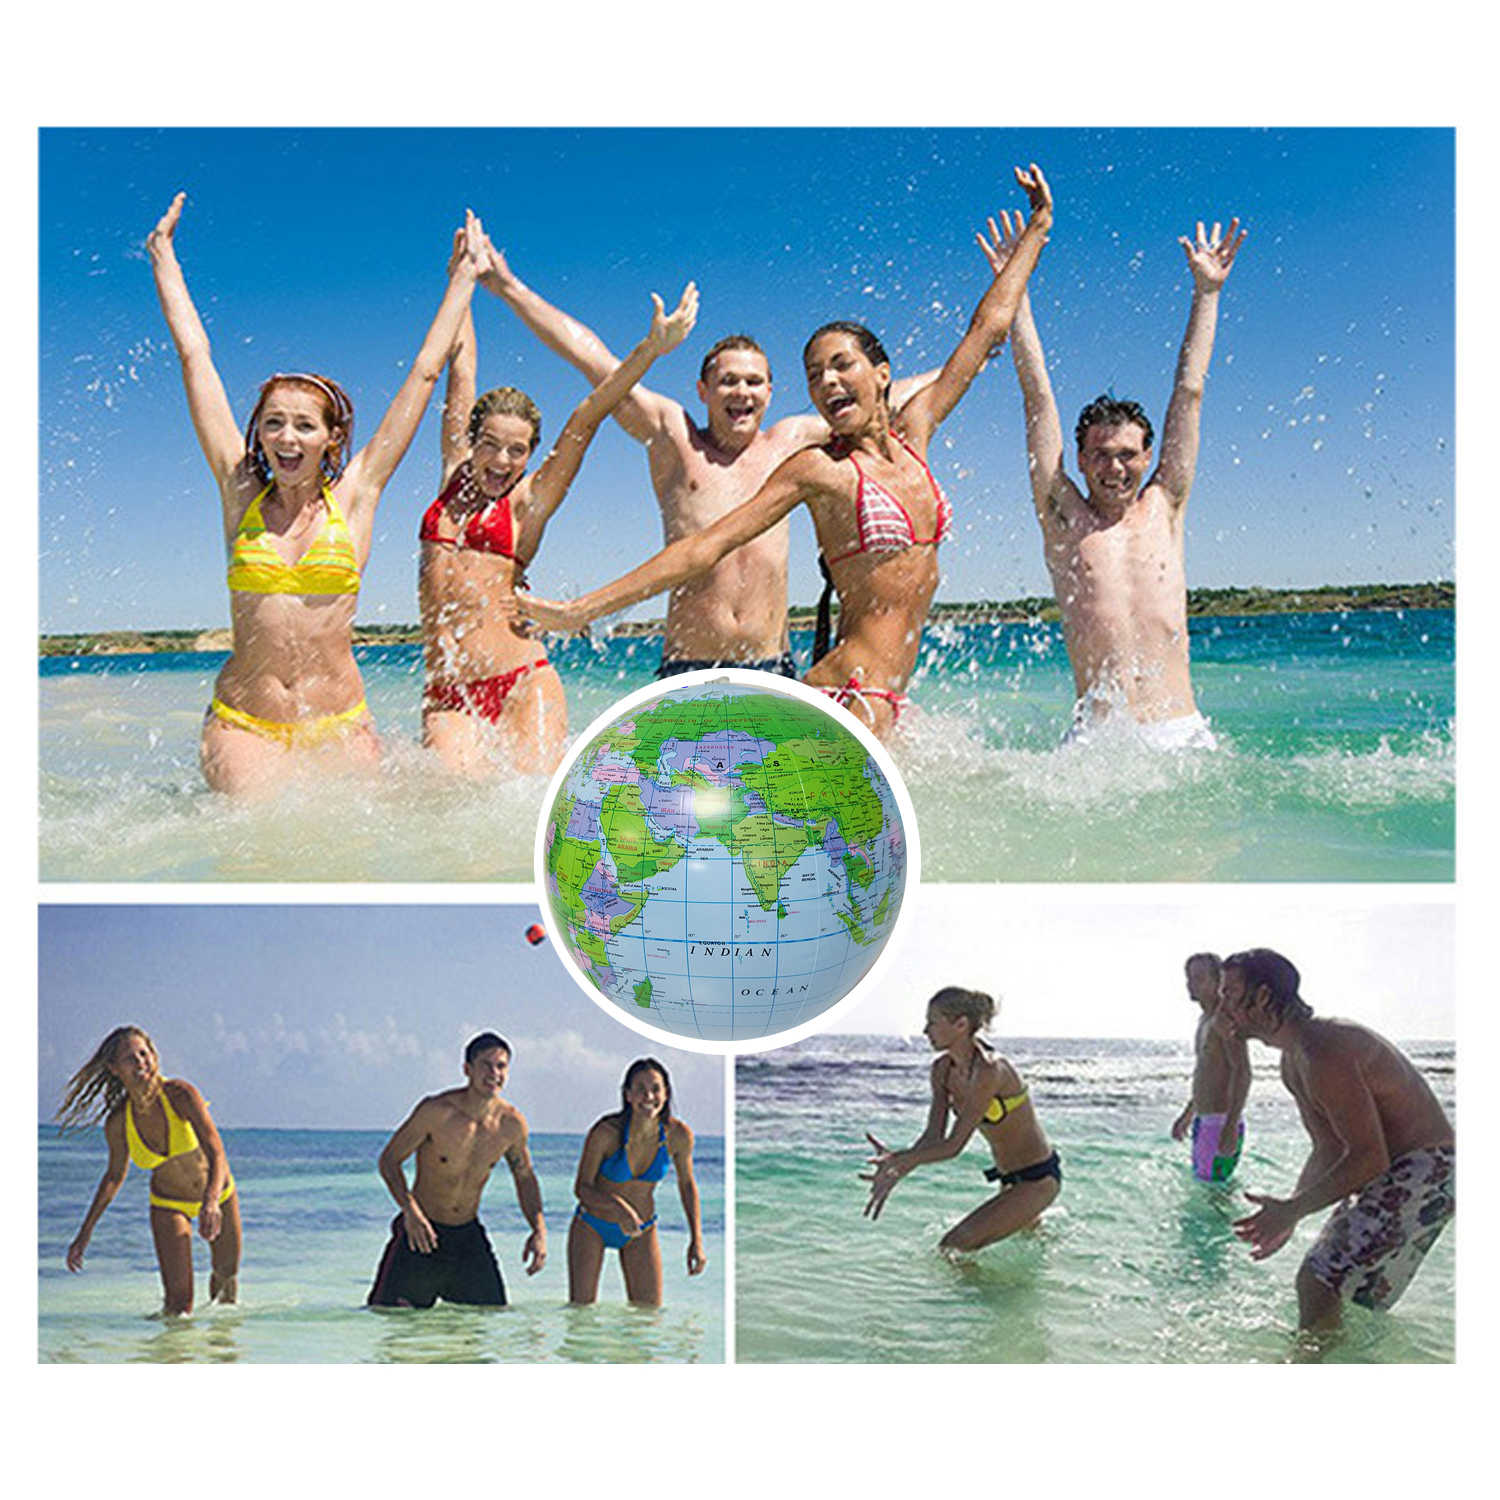 2pcs 12 Inch World Globe Style Inflatable Beach Ball Swimming Pool Party Toys For Kids Children Water Games